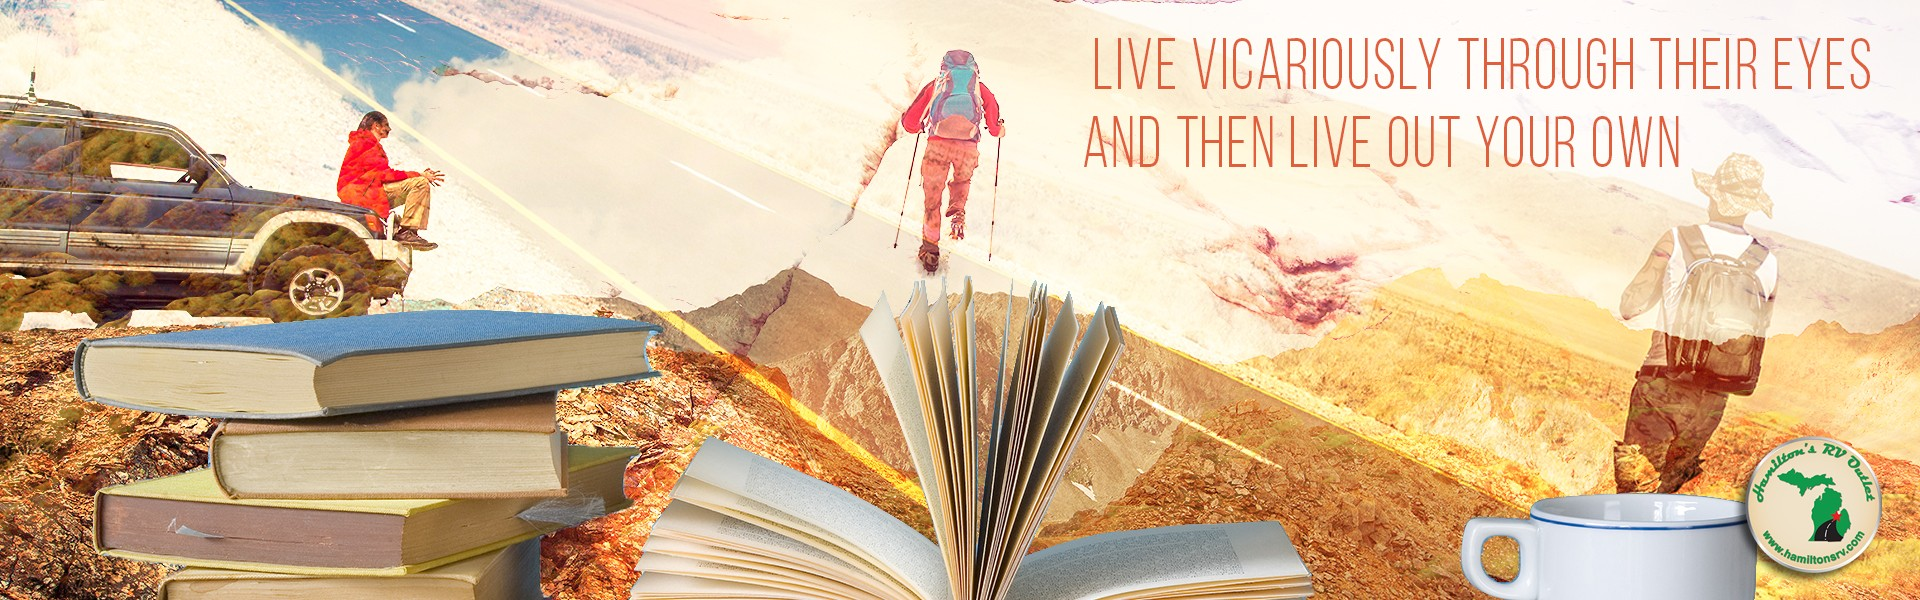 Live vicariously through their eyes - books and travelers